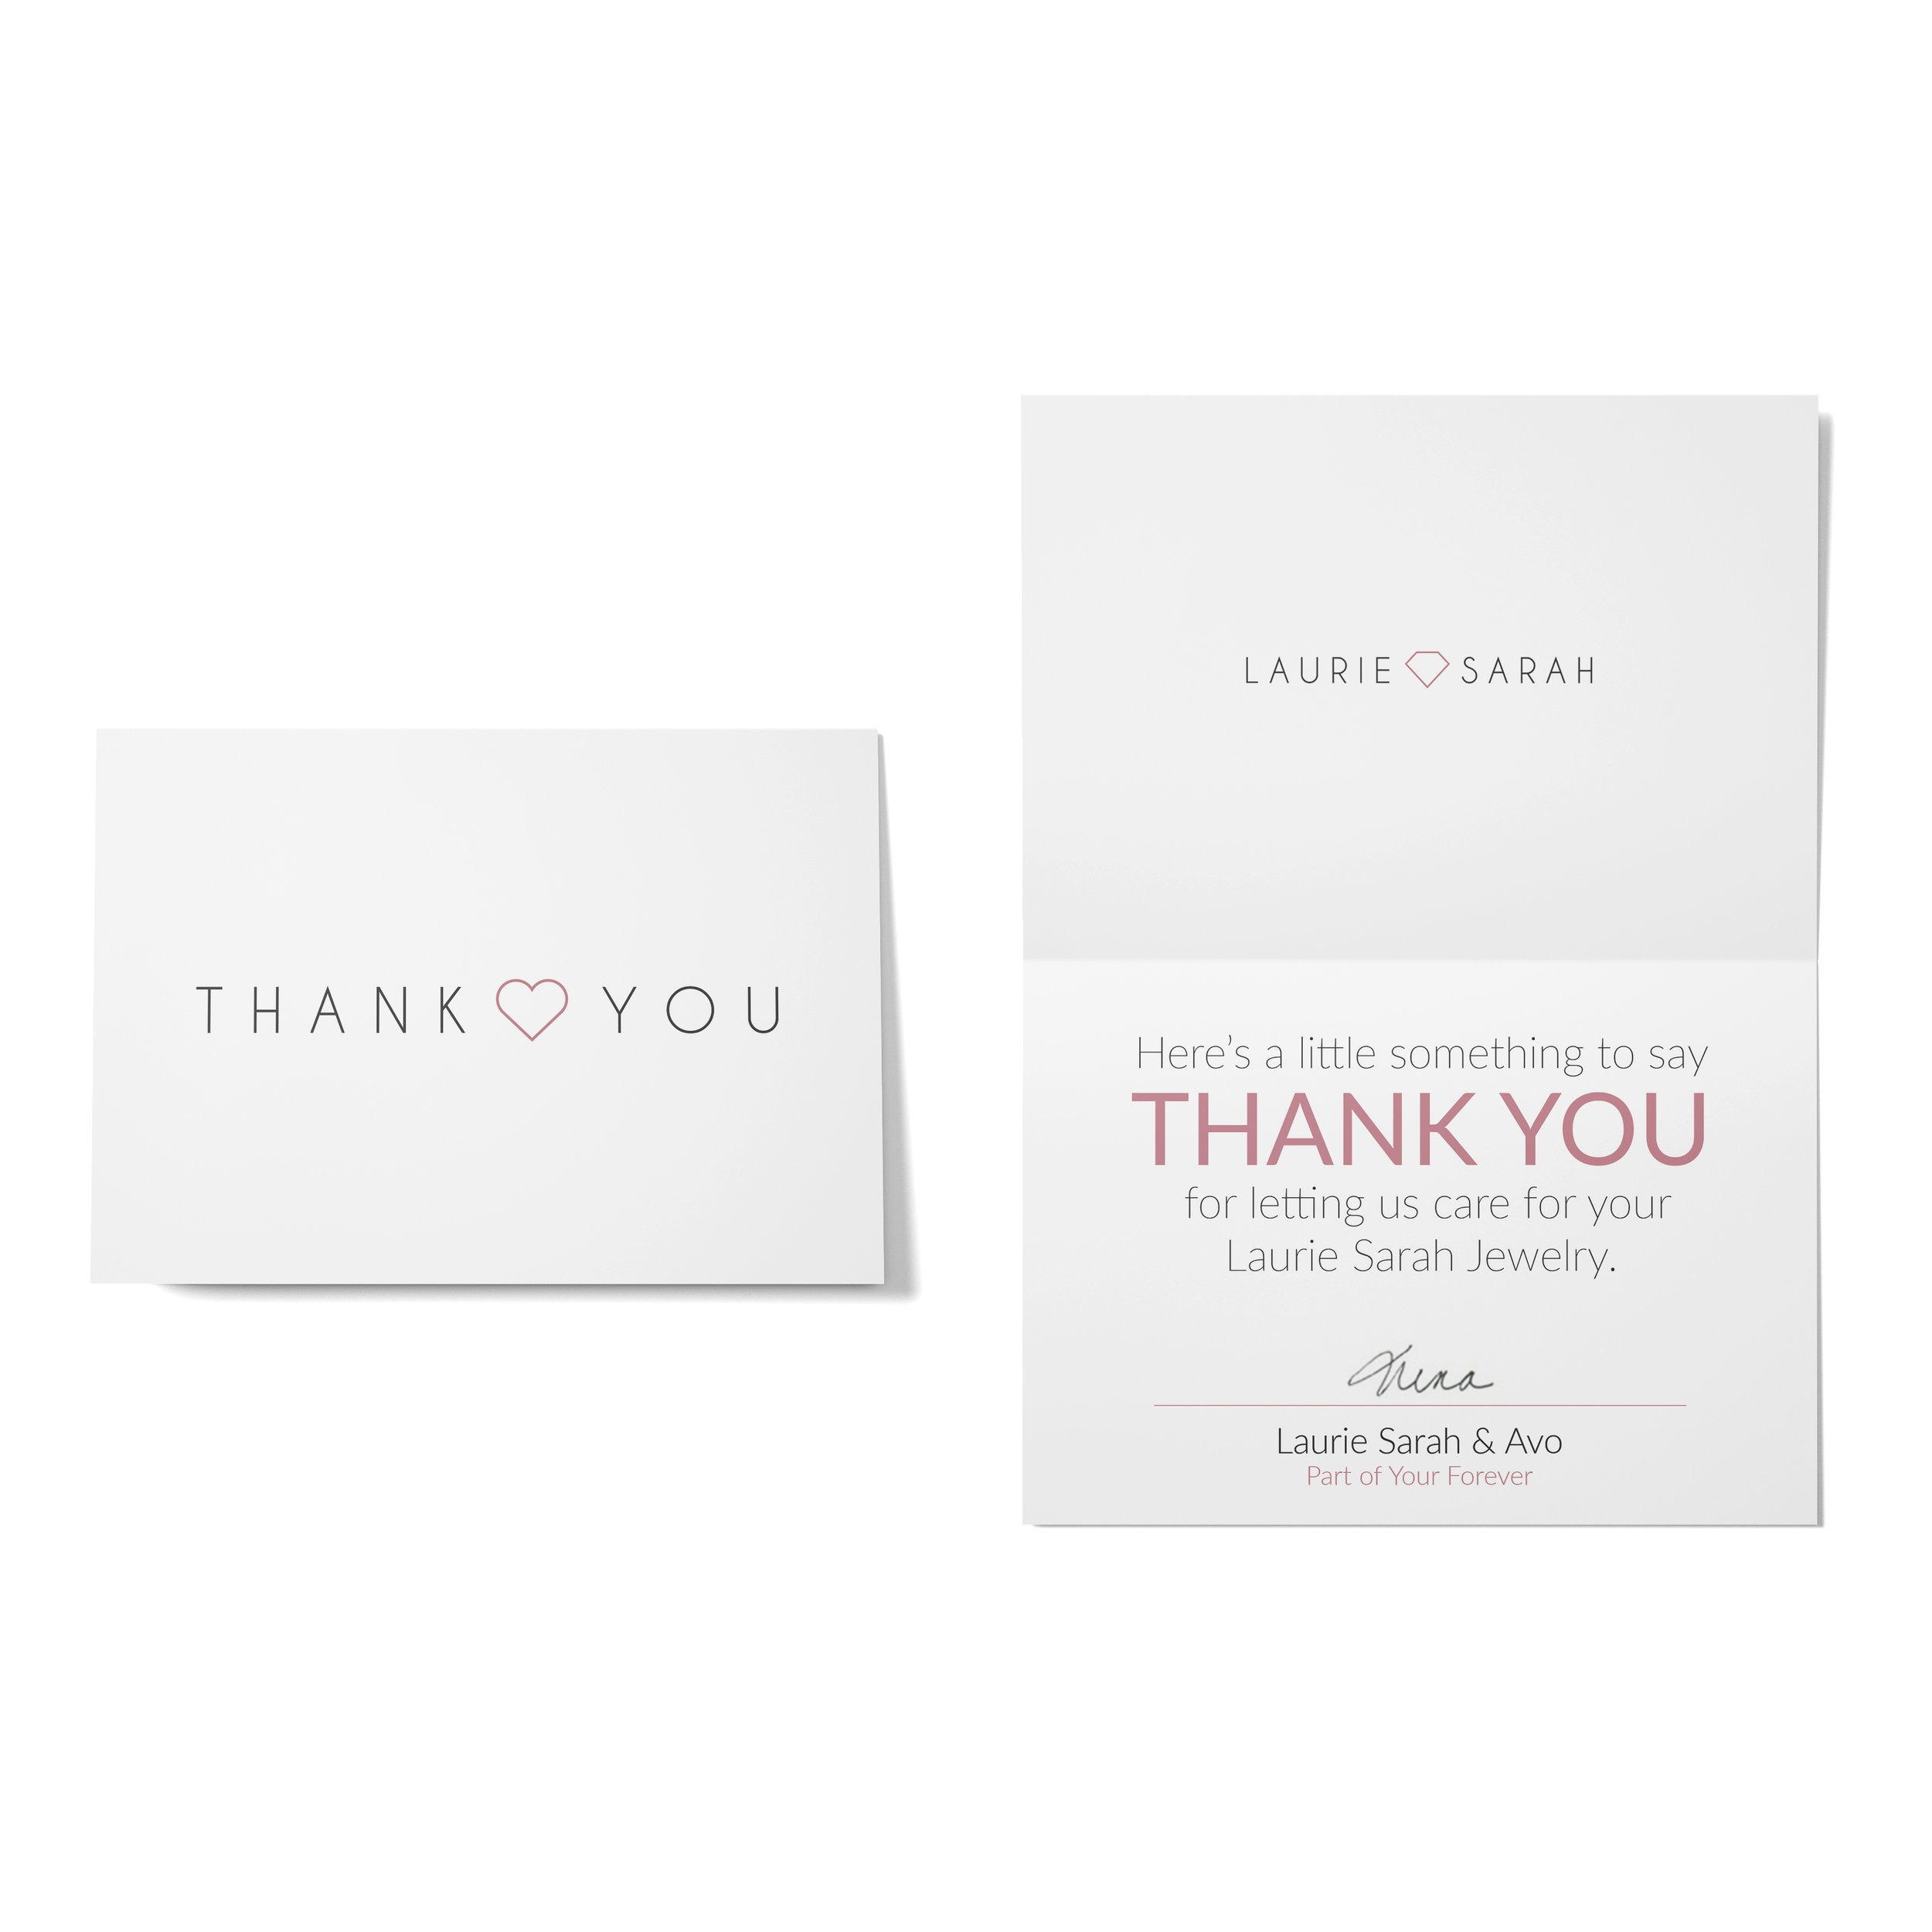 laurie-sarah-thank-you-cards.jpg